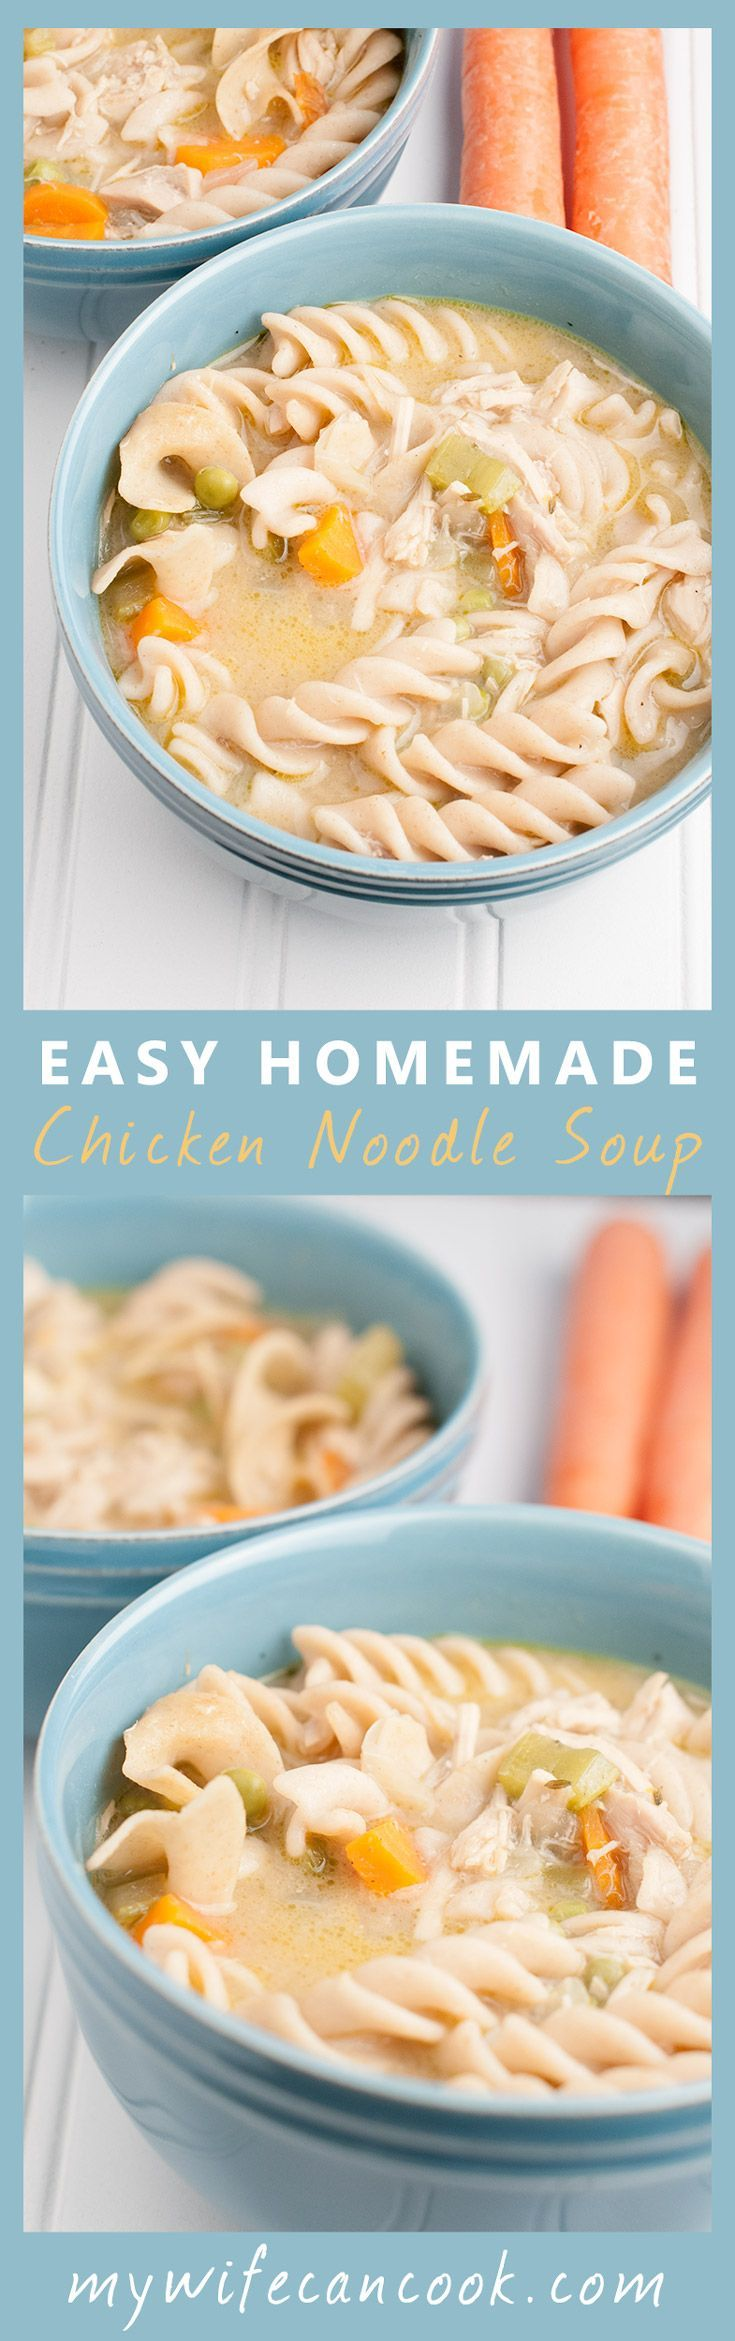 Easy homemade chicken noodle soup recipe chicken leftovers easy homemade chicken noodle soup forumfinder Image collections